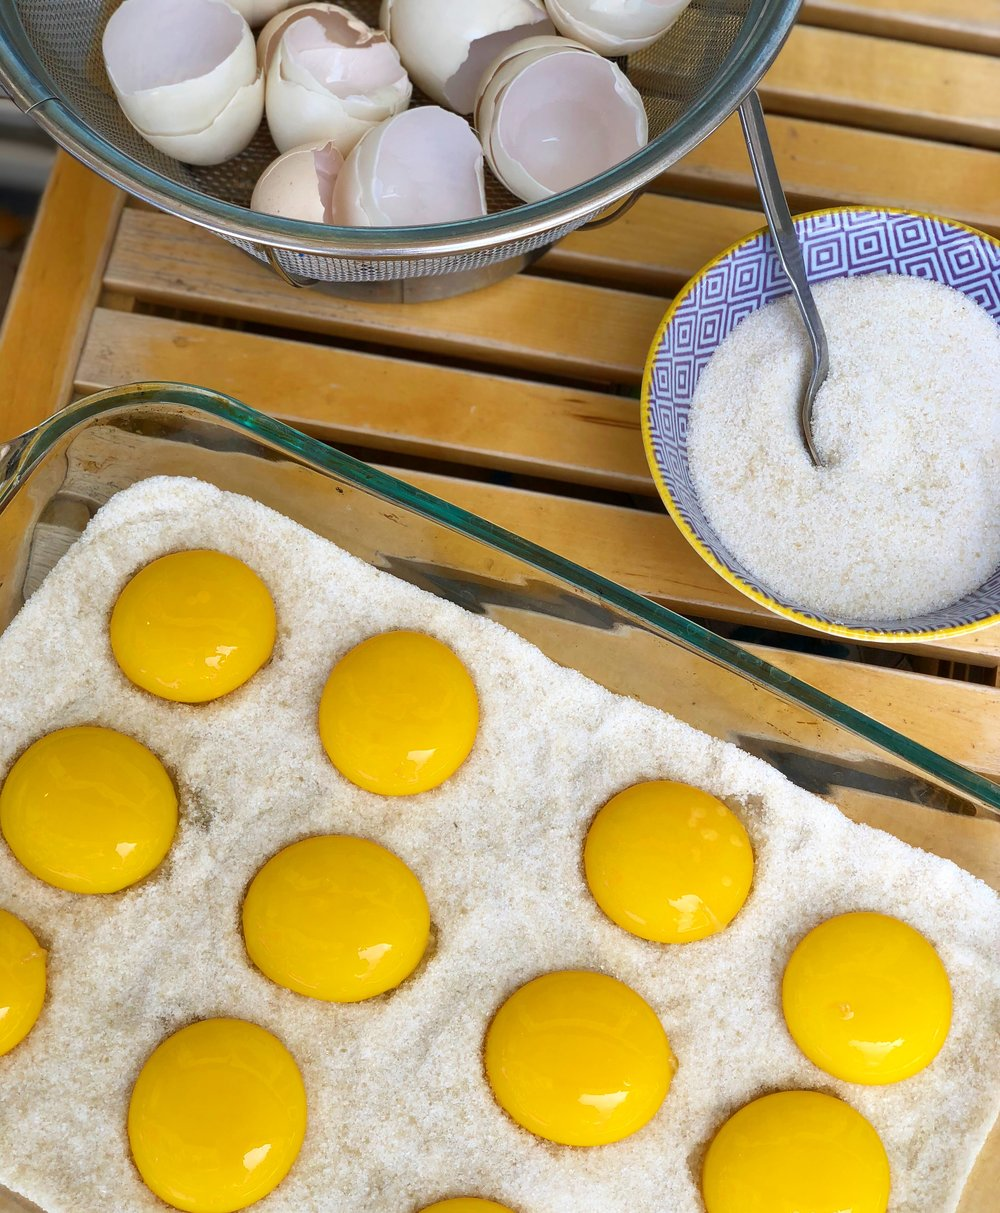 Fresh yolks placed in salt/sugar, covered, and refrigerated.